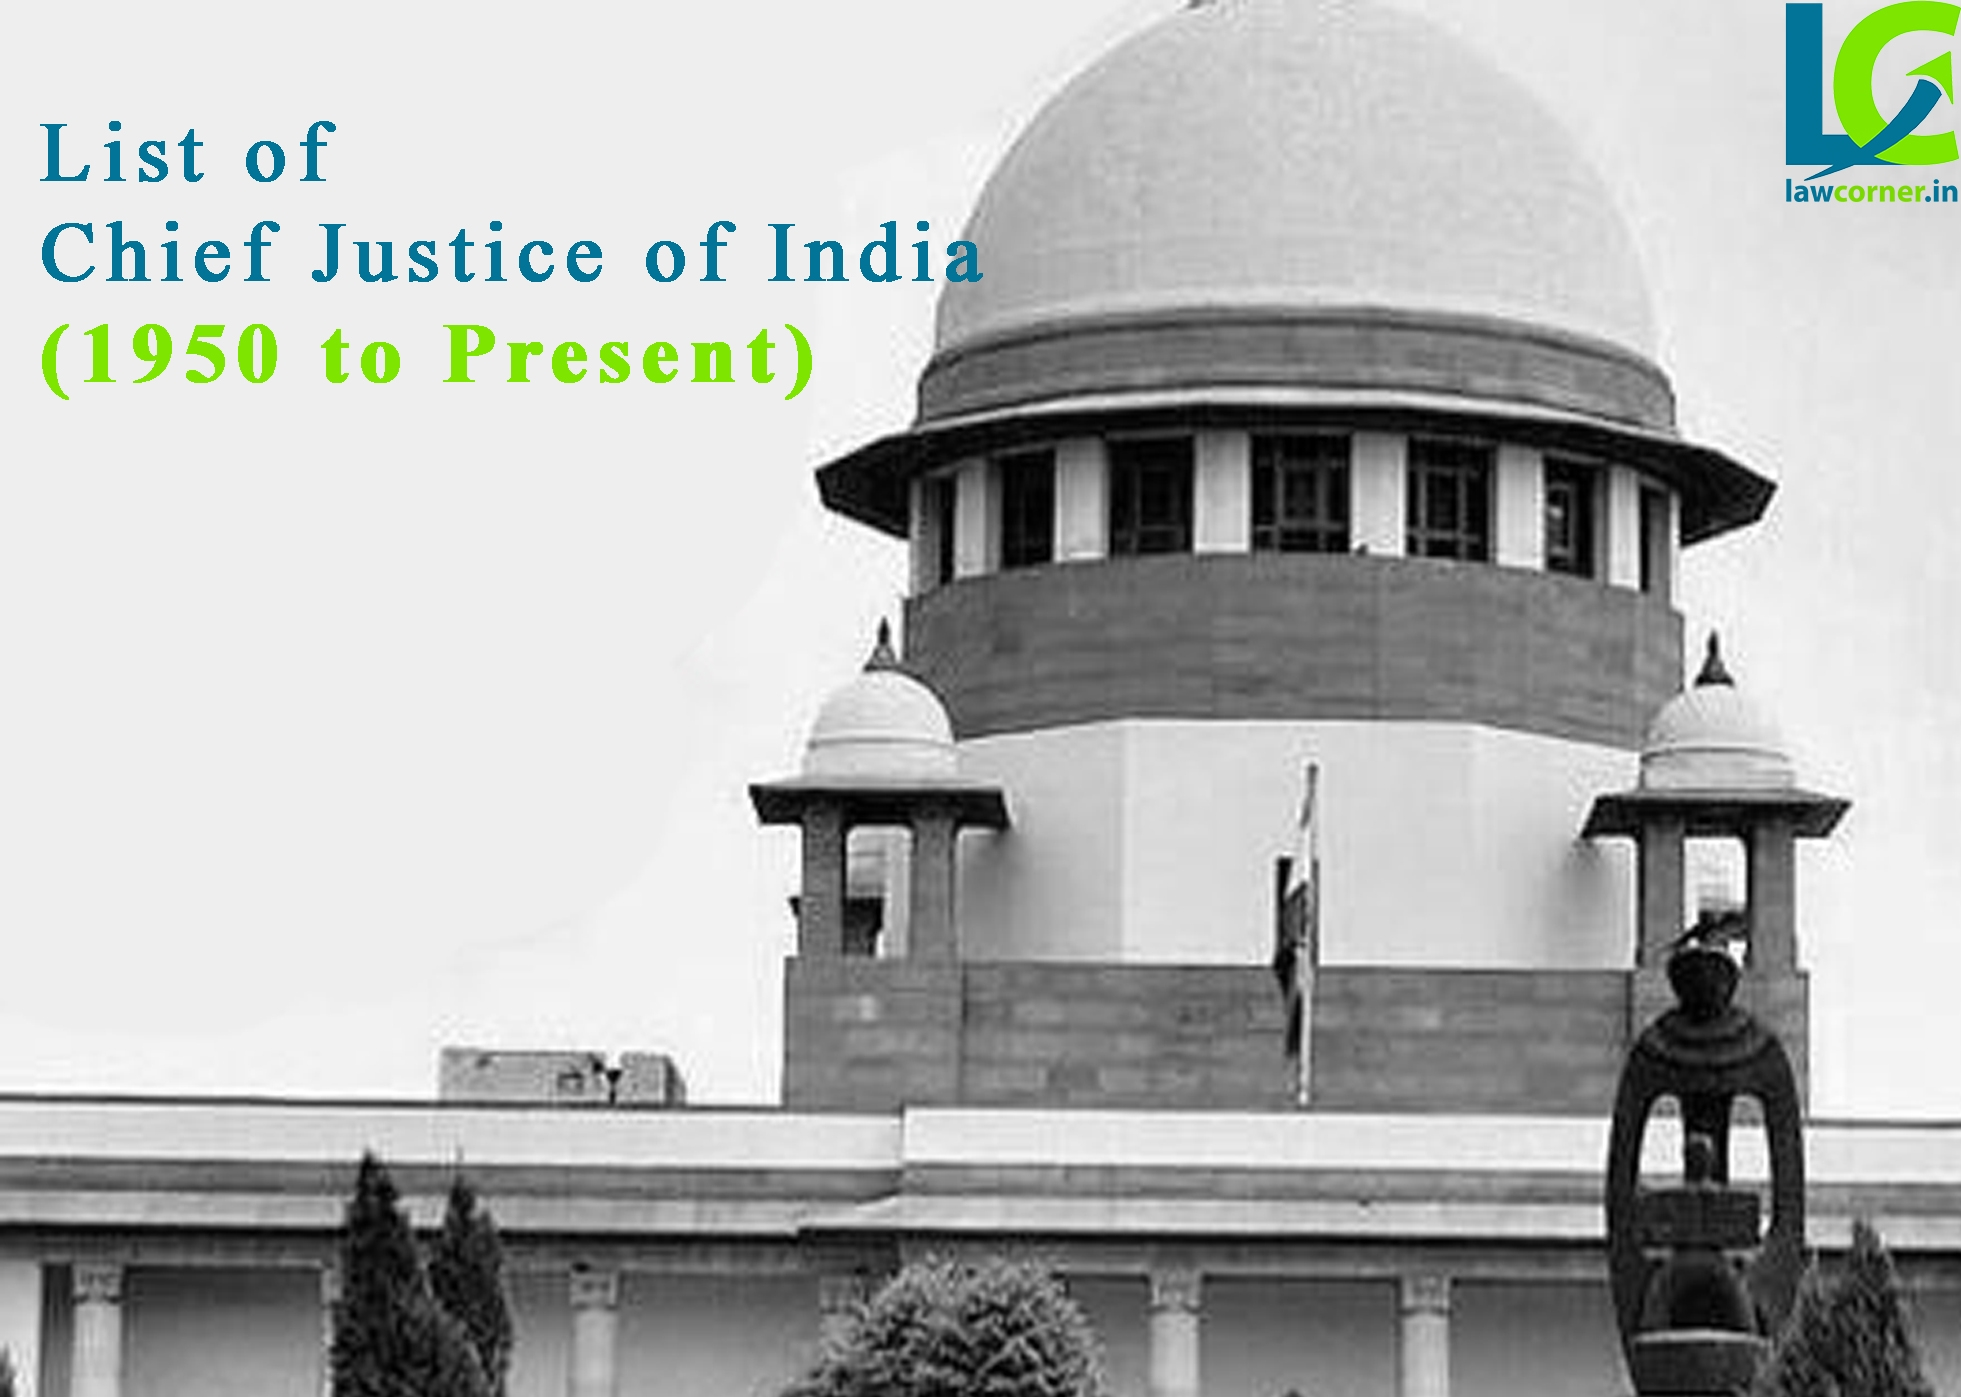 List of Chief Justice of India